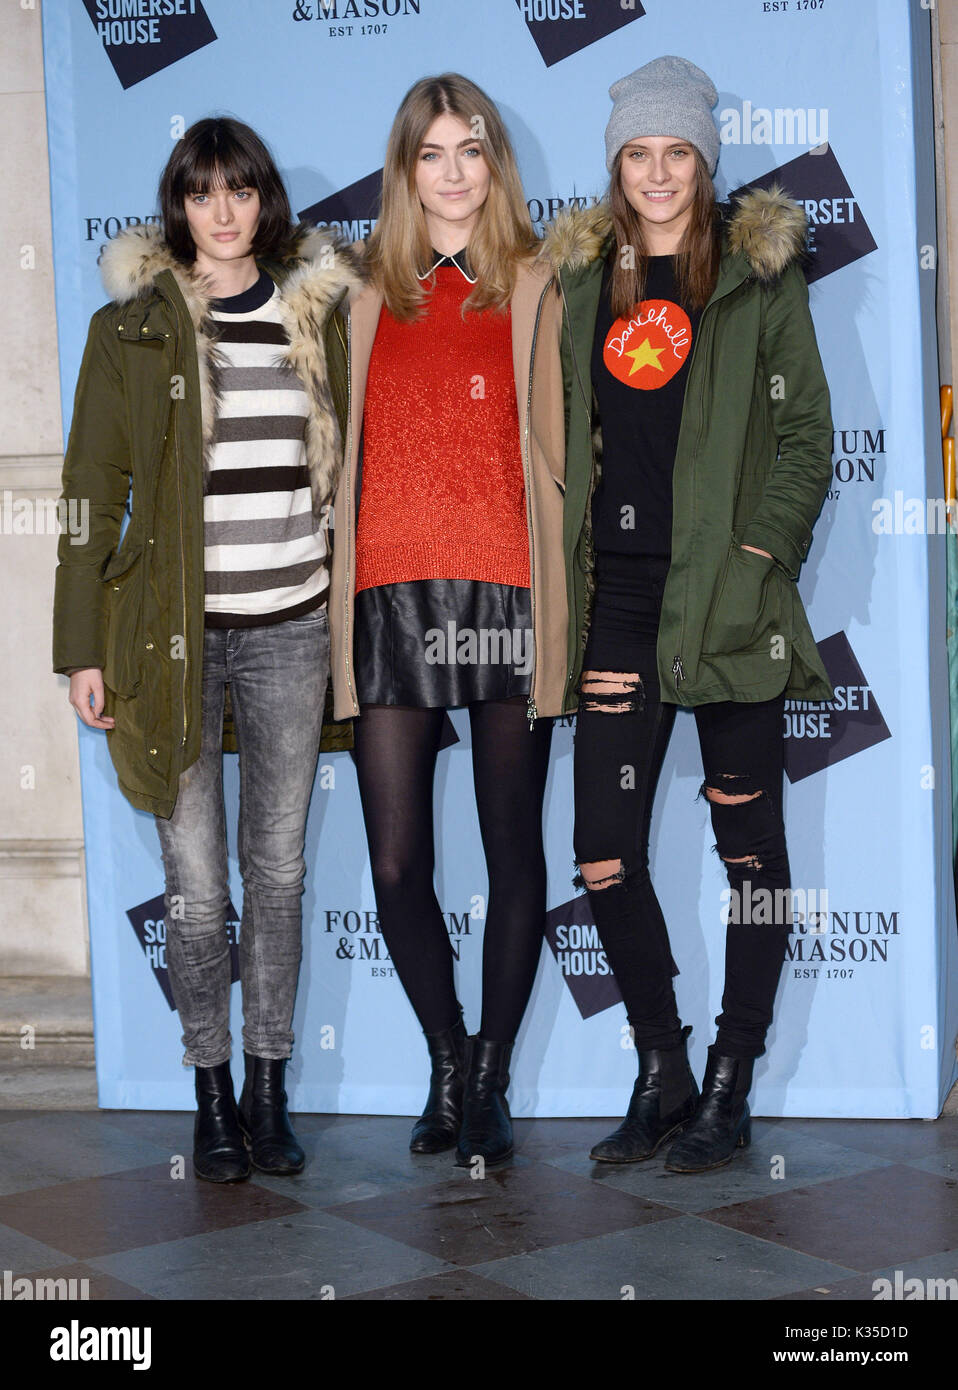 Photo Must Be Credited ©Alpha Press 078237 16/11/2016 Sam Rollinson, Eve Delf and Charlotte Wiggins Skate 2016 Launch Party At Somerset House London - Stock Image